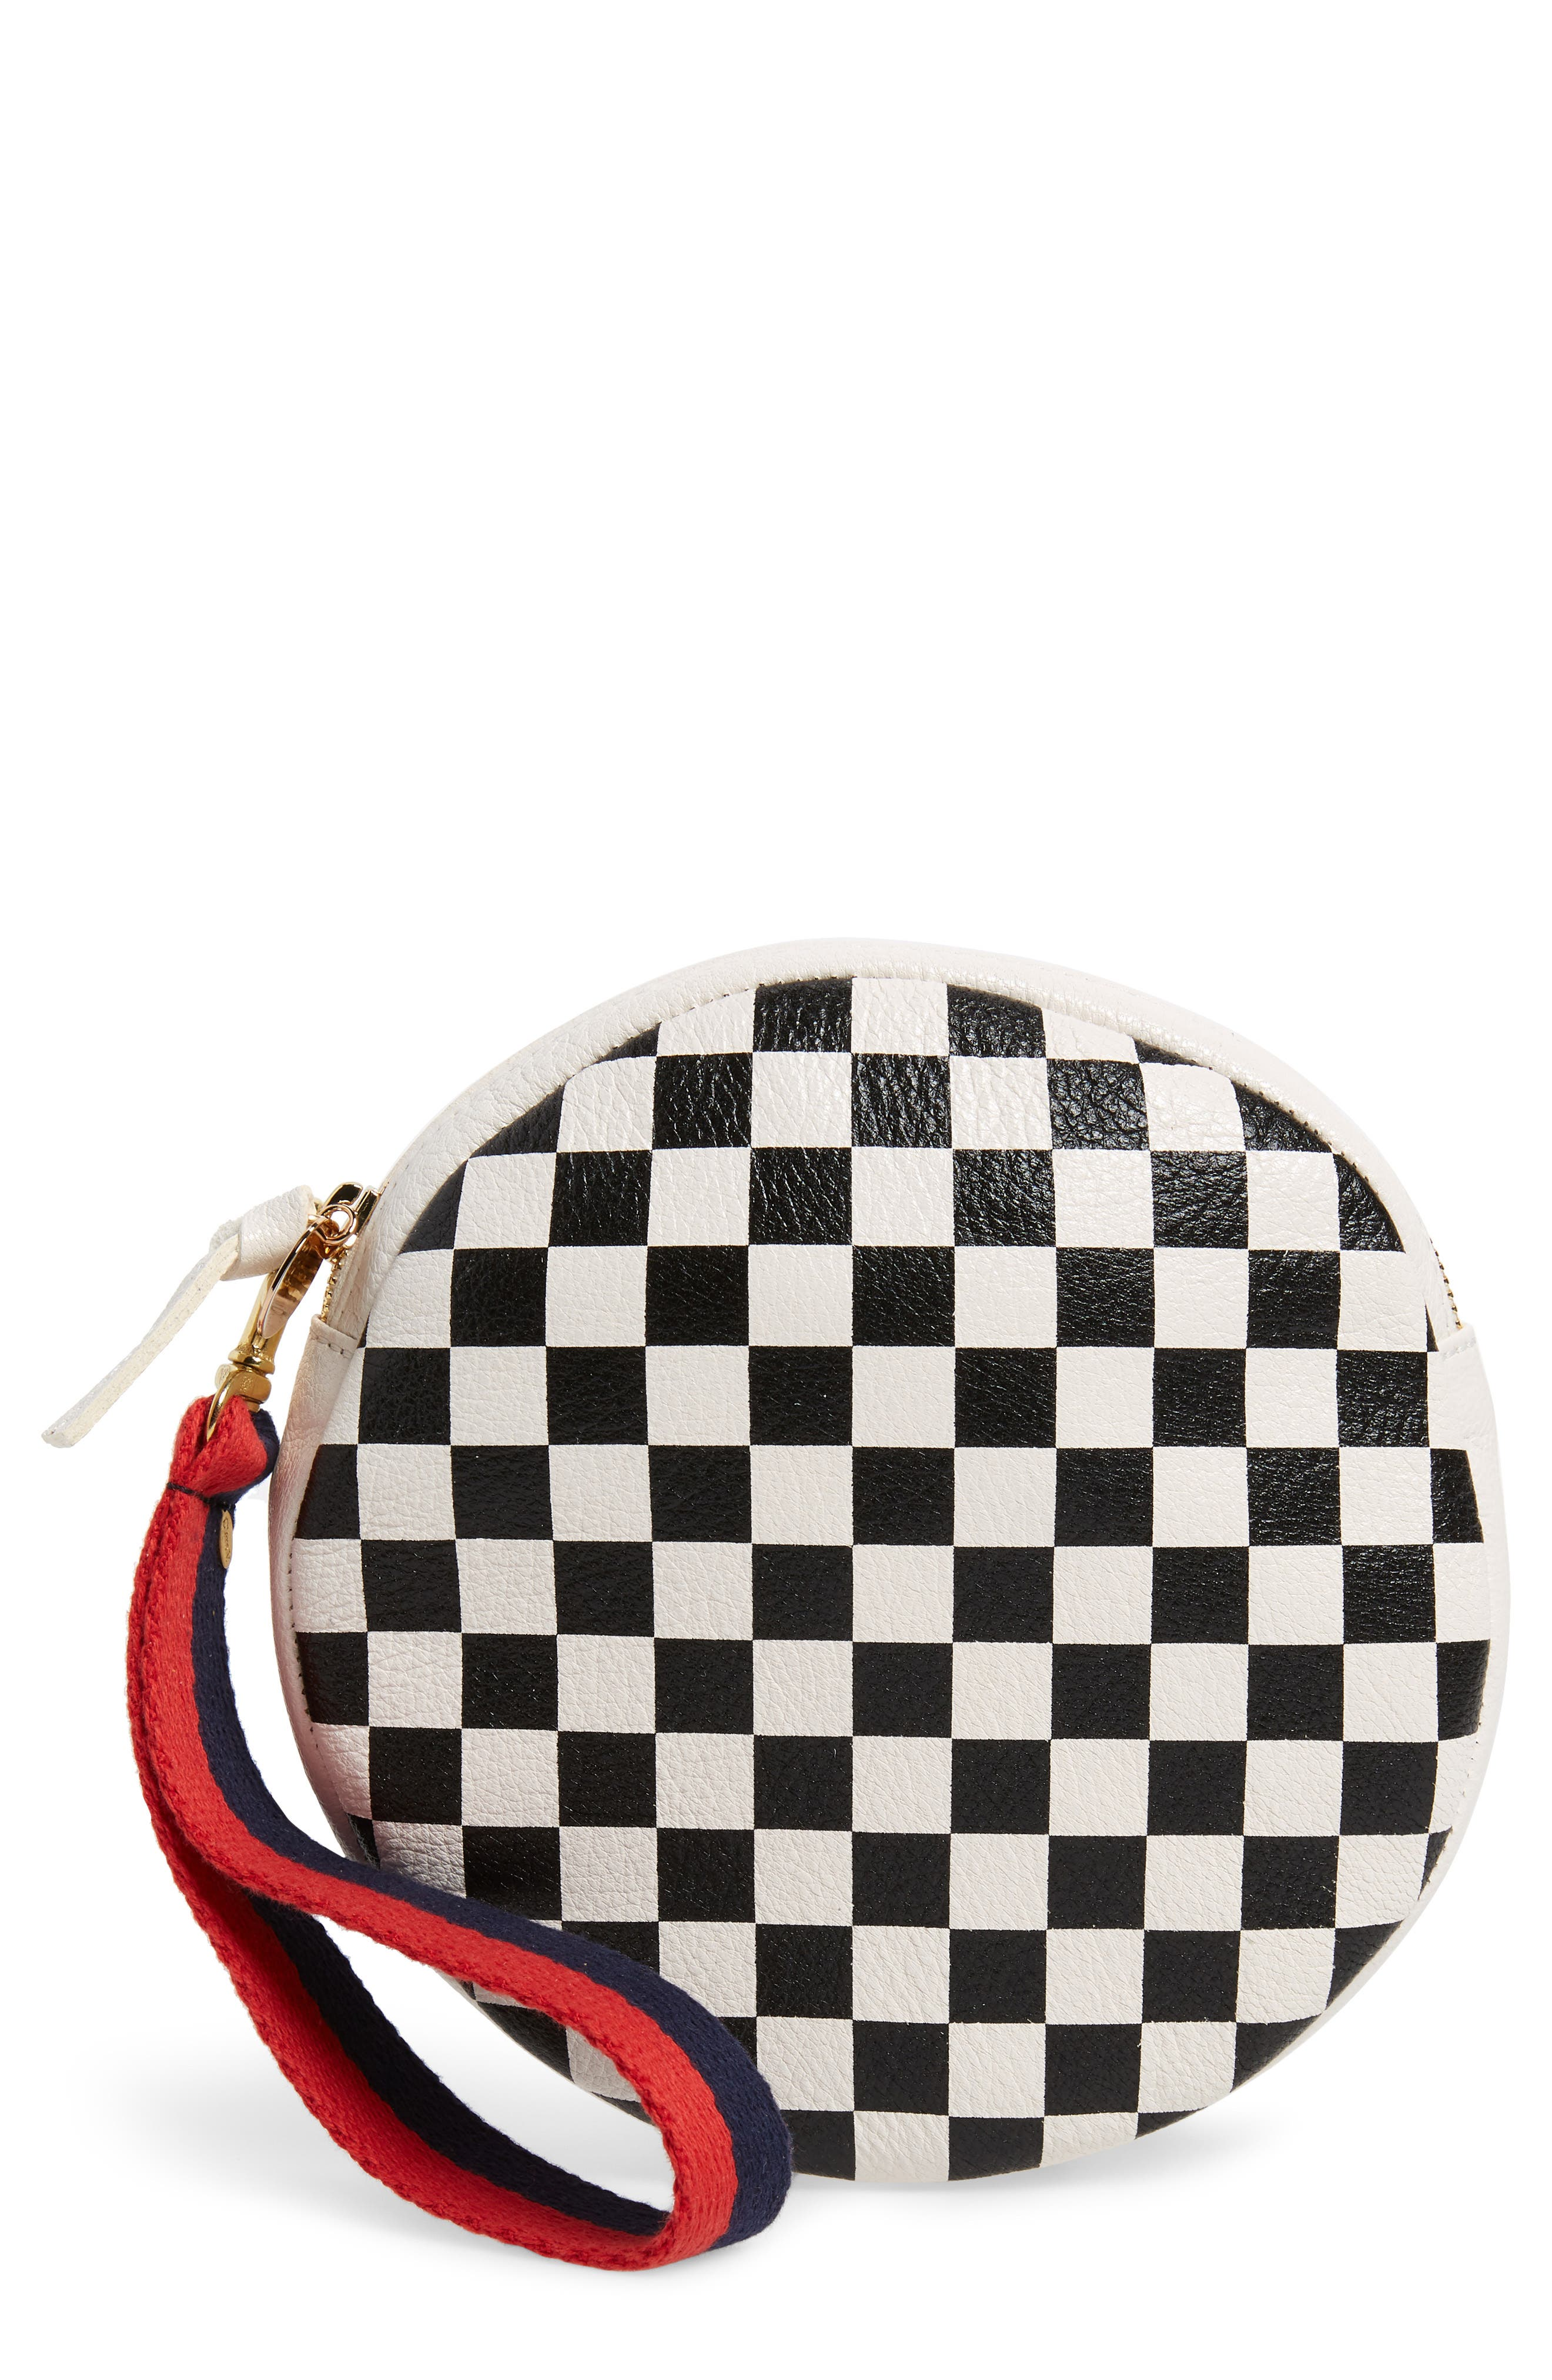 Checkered Leather Circle Clutch,                             Main thumbnail 1, color,                             001